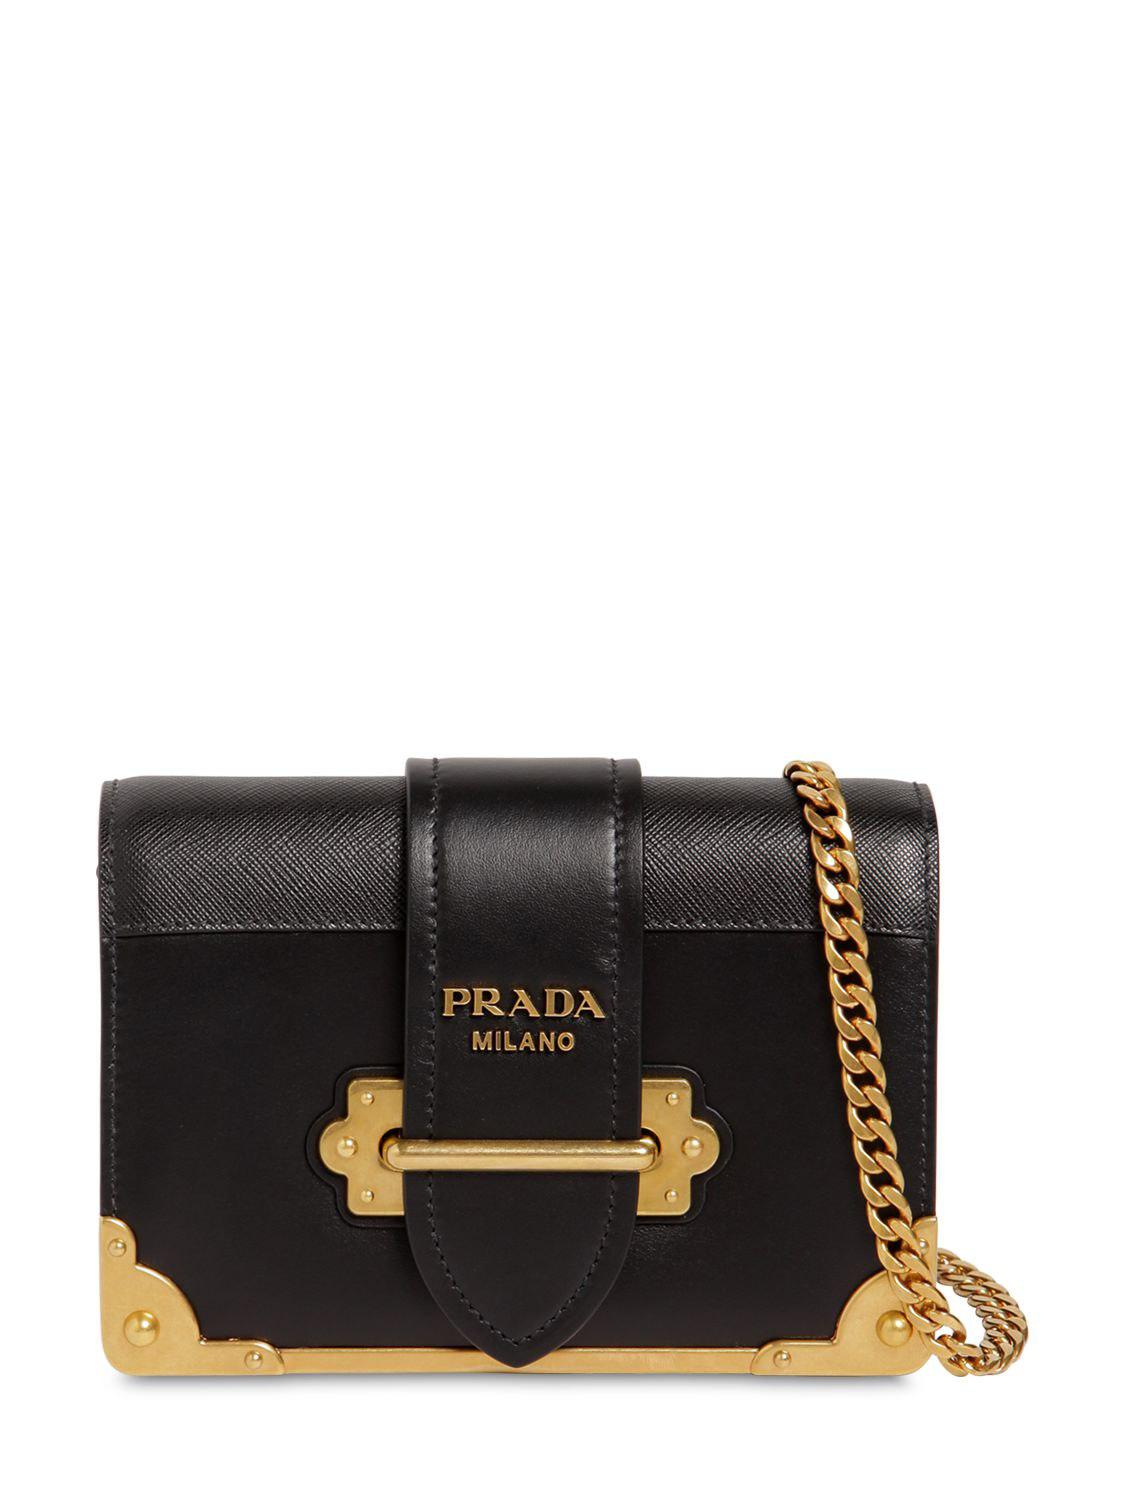 409339d926861e Lyst - Prada Small Cahier Leather Shoulder Bag in Black